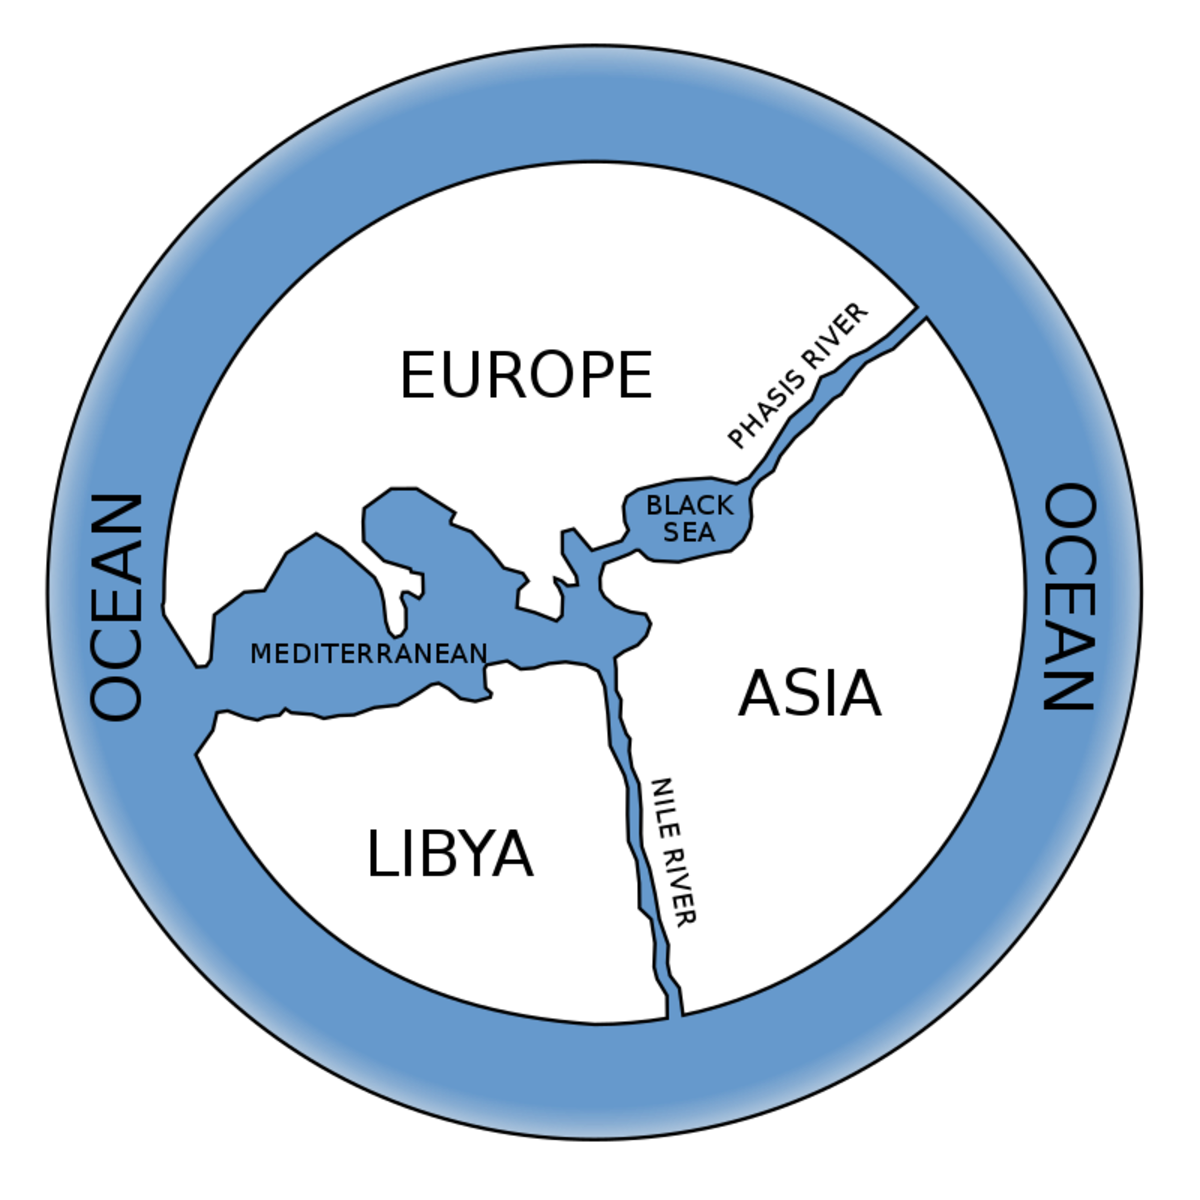 A modern reconstruction of Anaximander's map of the world.